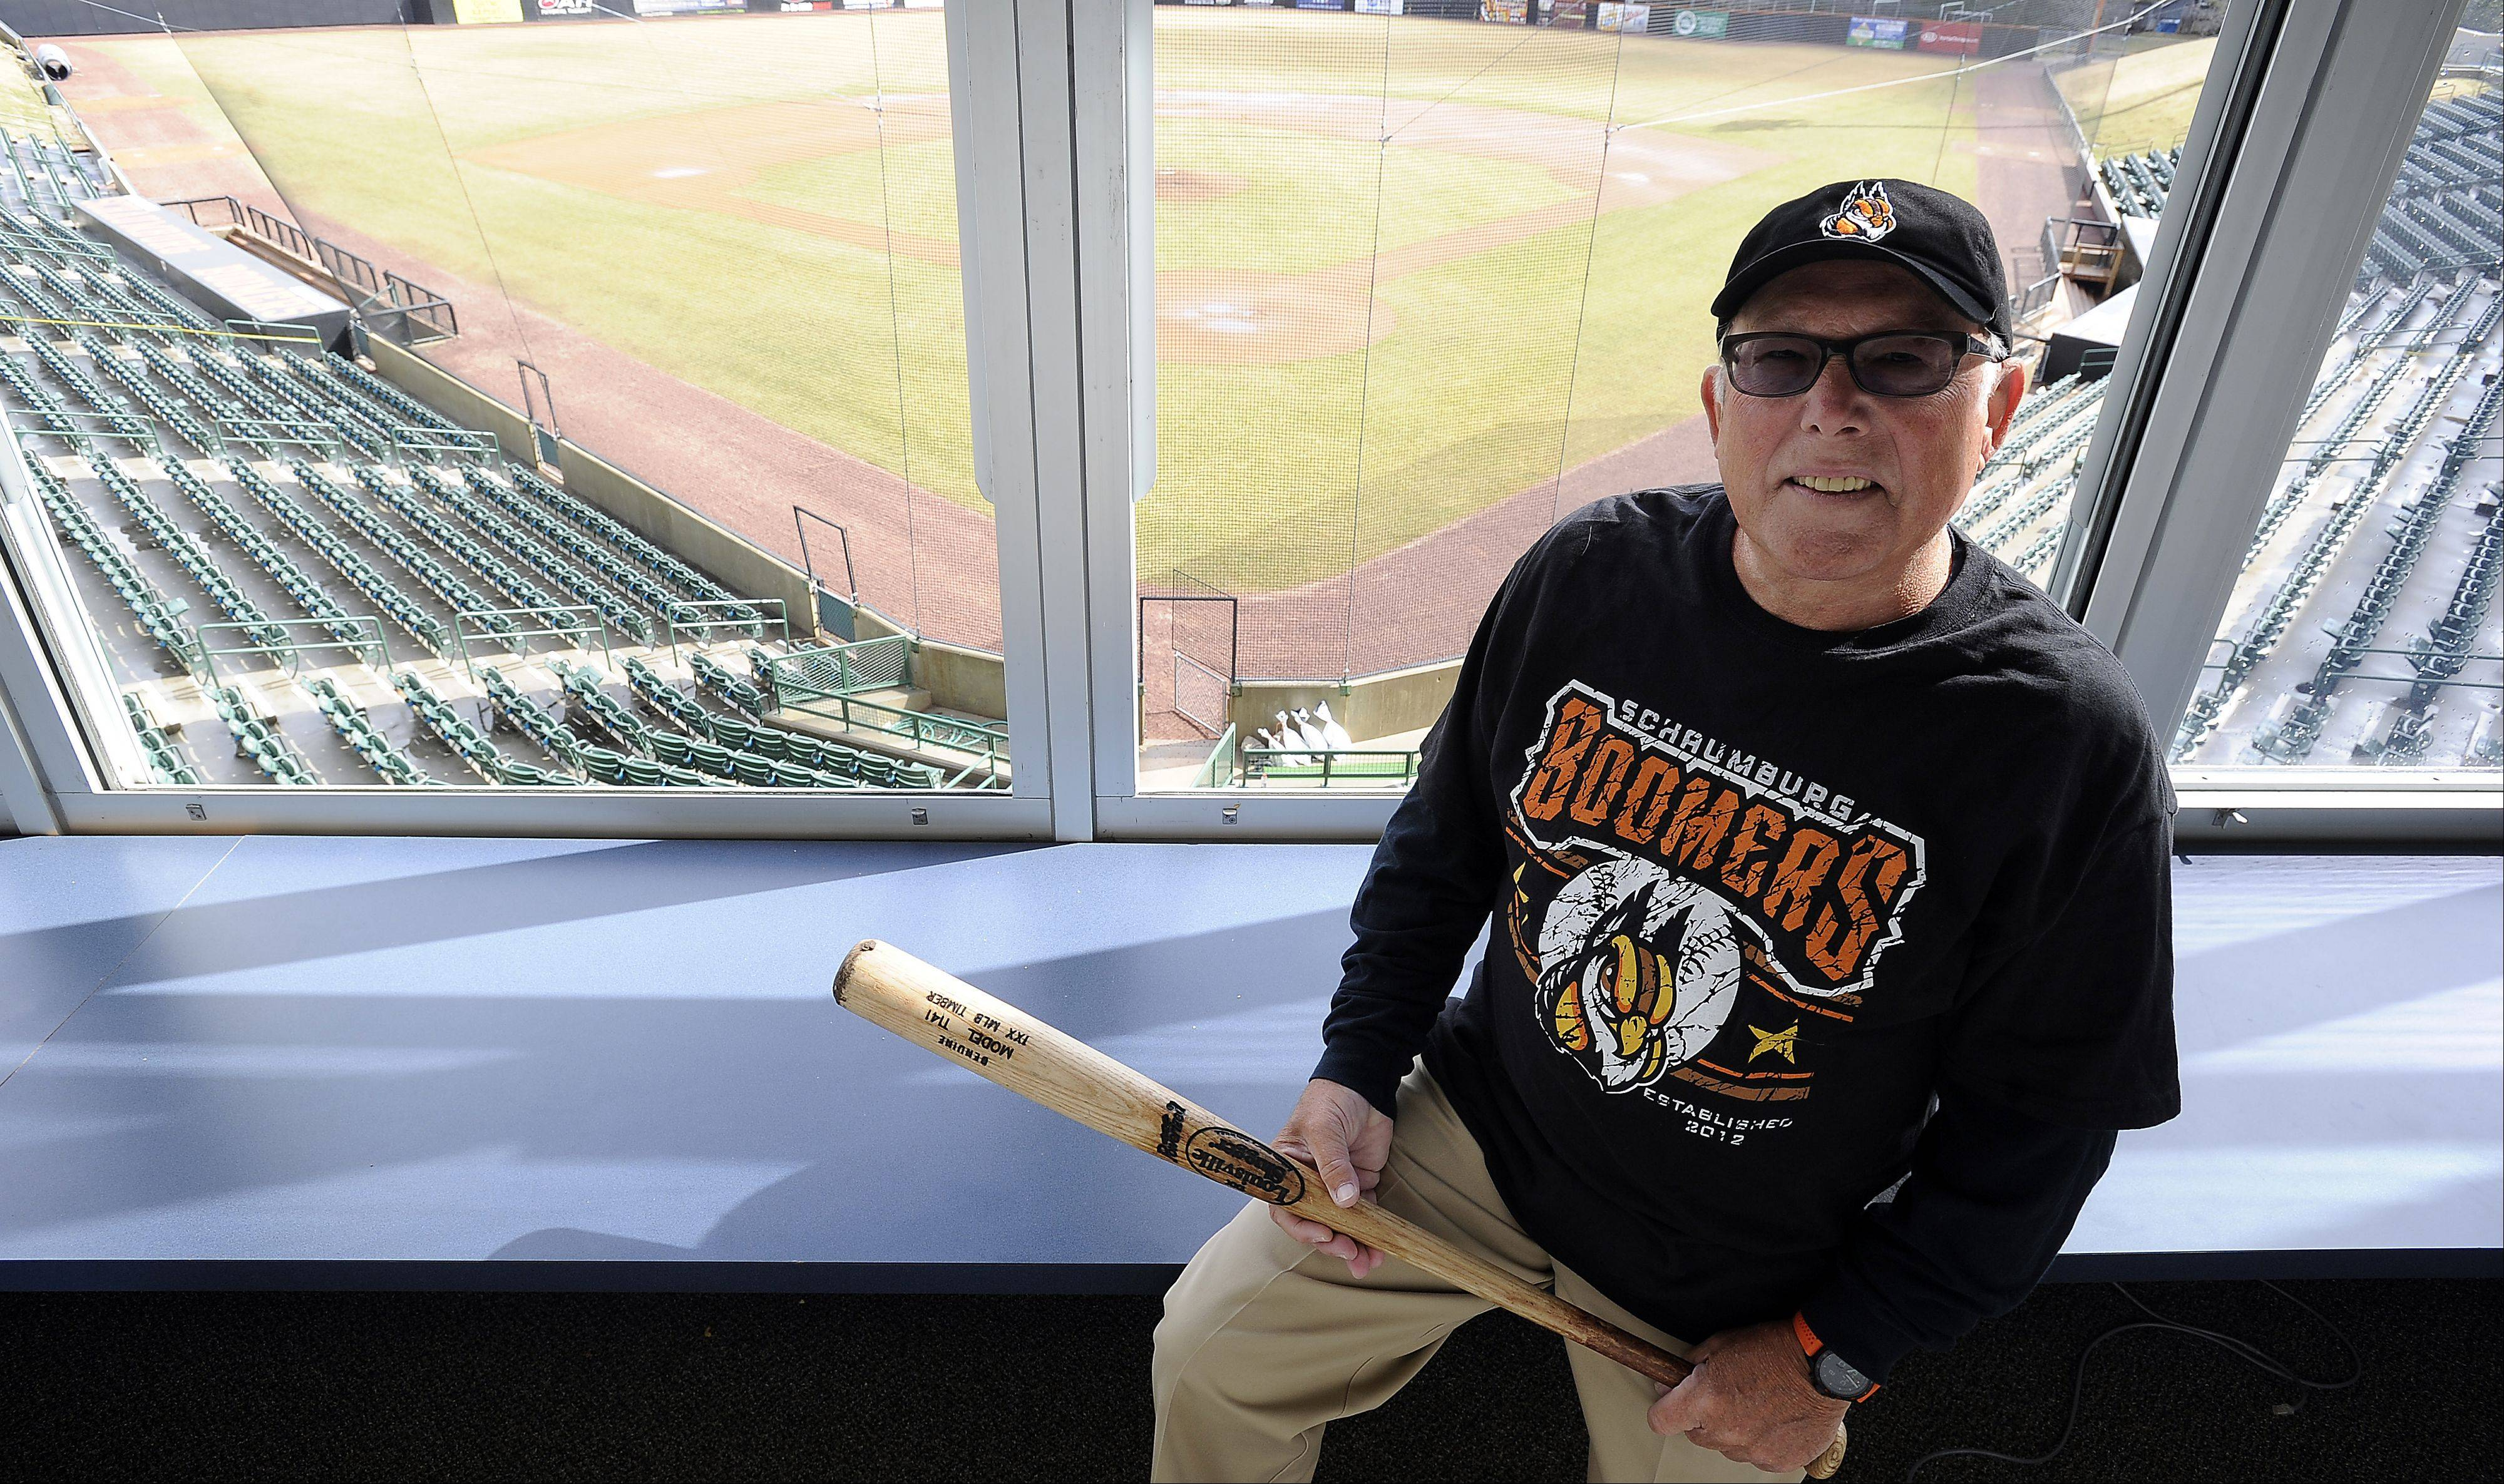 As a retiree, Art Racek of Roselle works several jobs, including one at the Schaumburg Boomers Stadium.